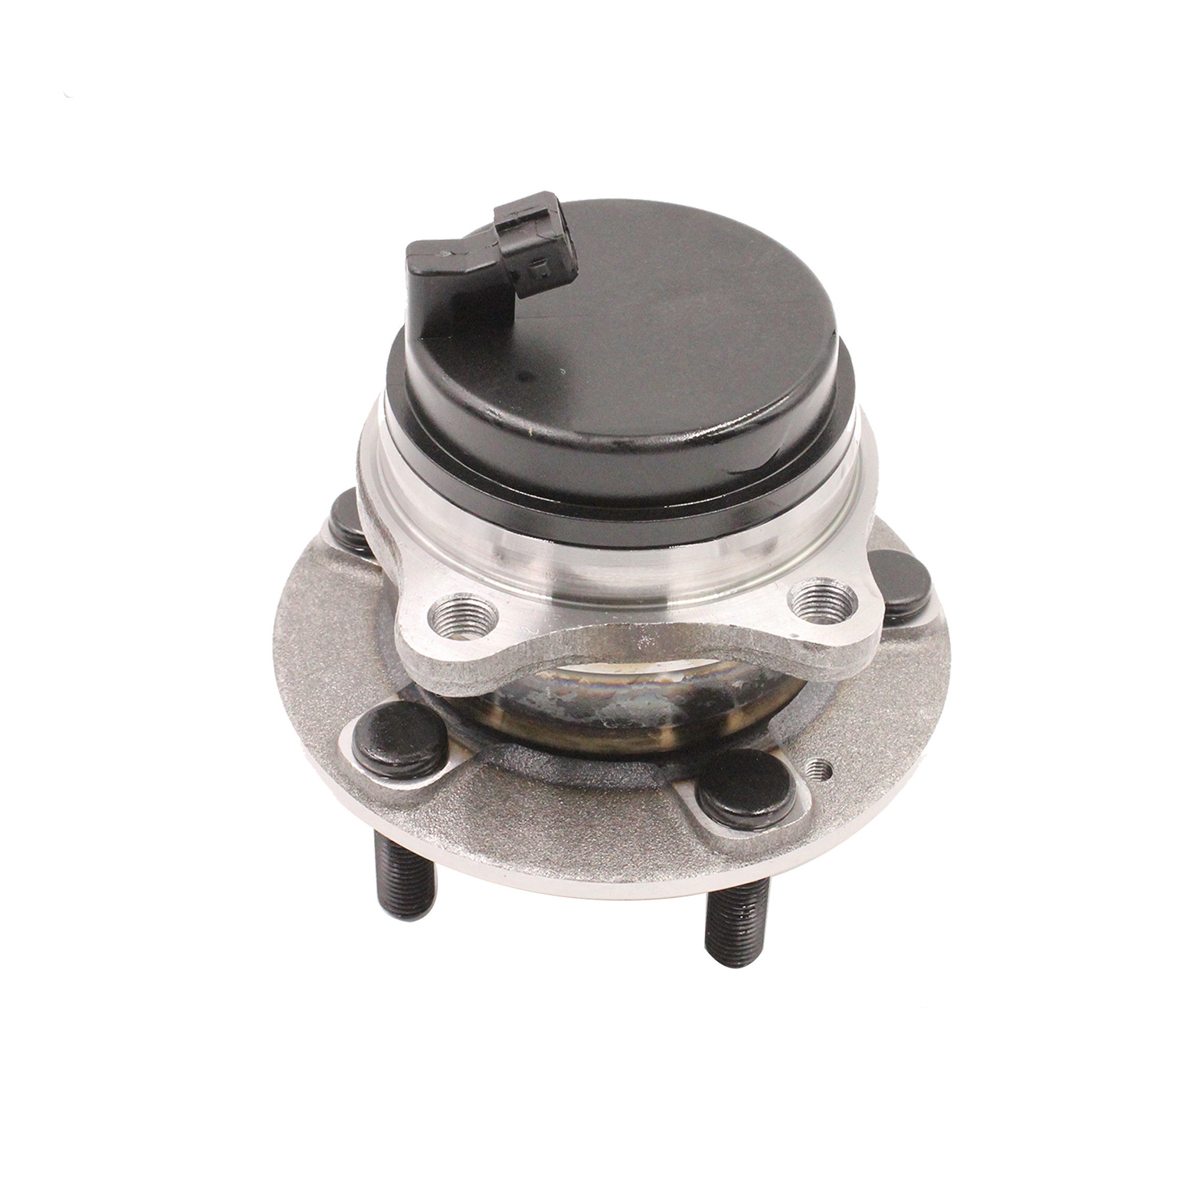 hight resolution of detroit axle rear wheel bearing and hub assembly driver or passenger side for 2015